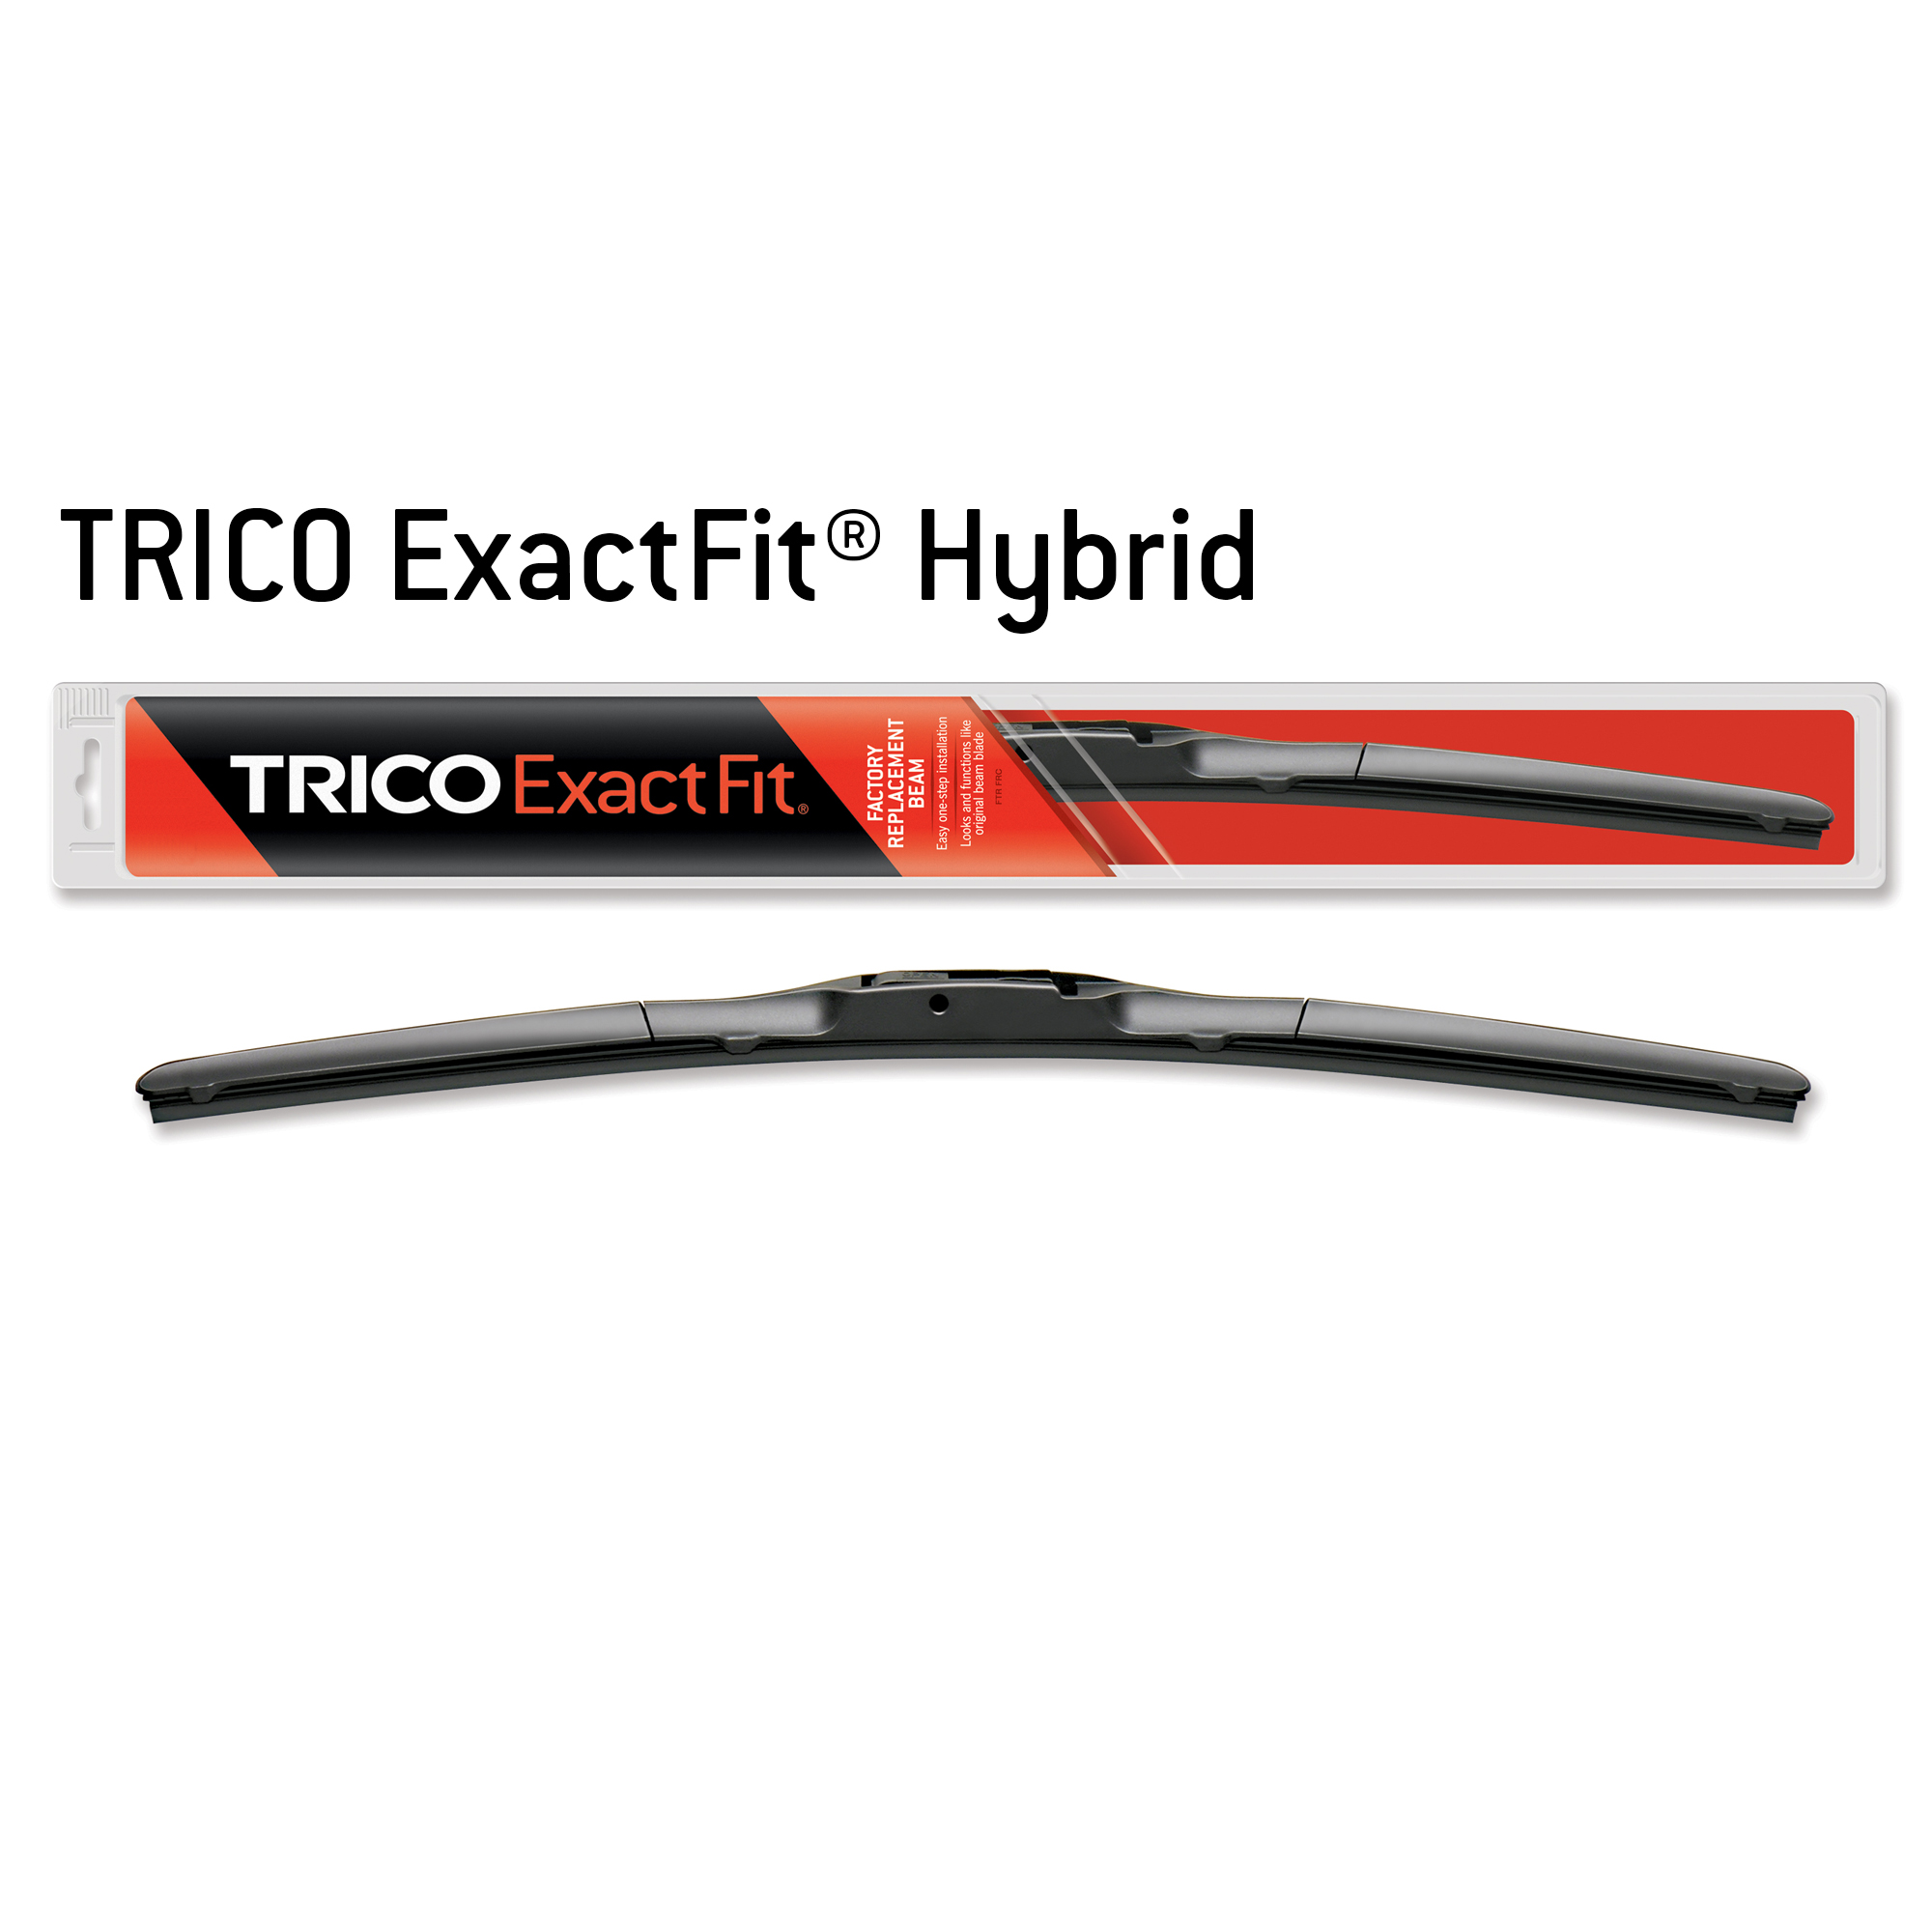 26 Pack of 1 Trico 26-1HB Exact Fit Wiper Blade